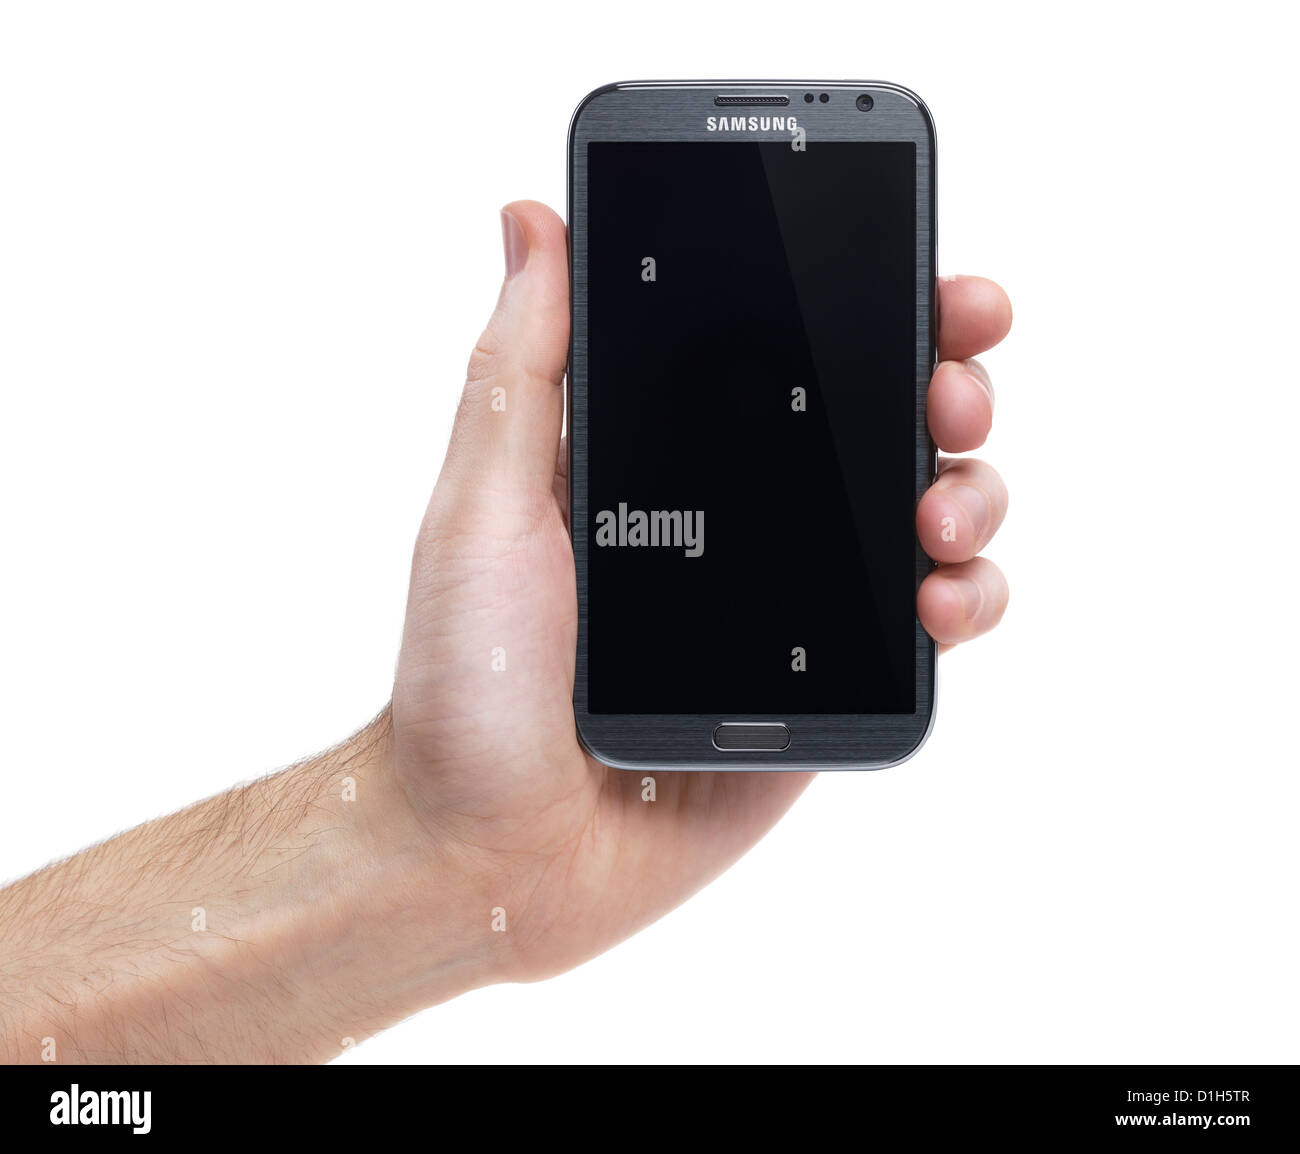 Hand holding Samsung Galaxy Note II smartphone Android phone